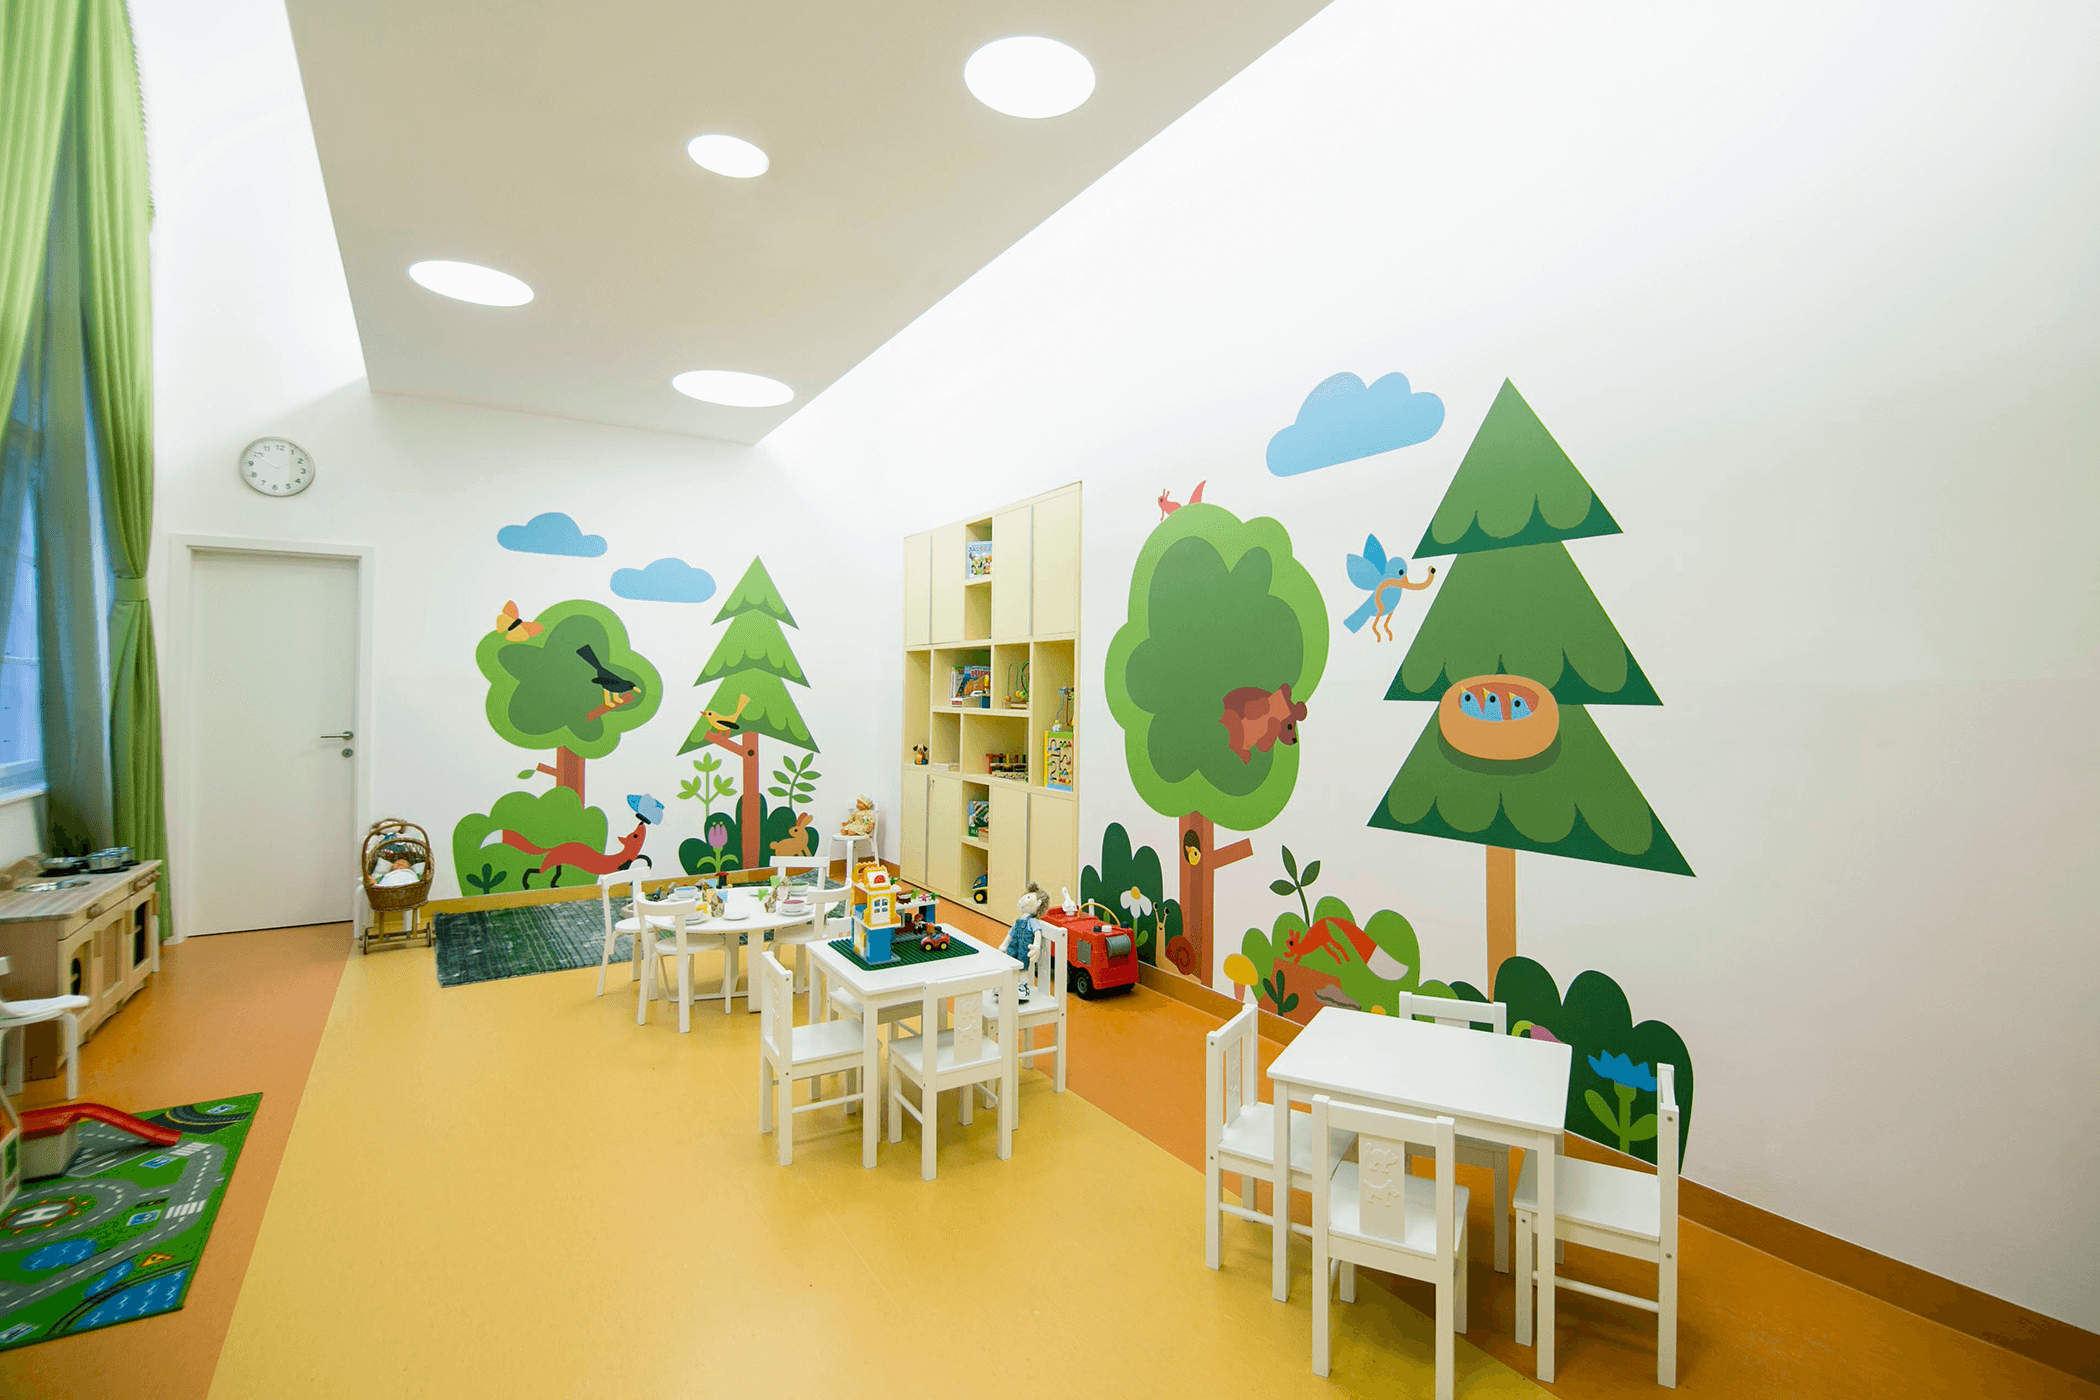 Wall decor - forest with animals